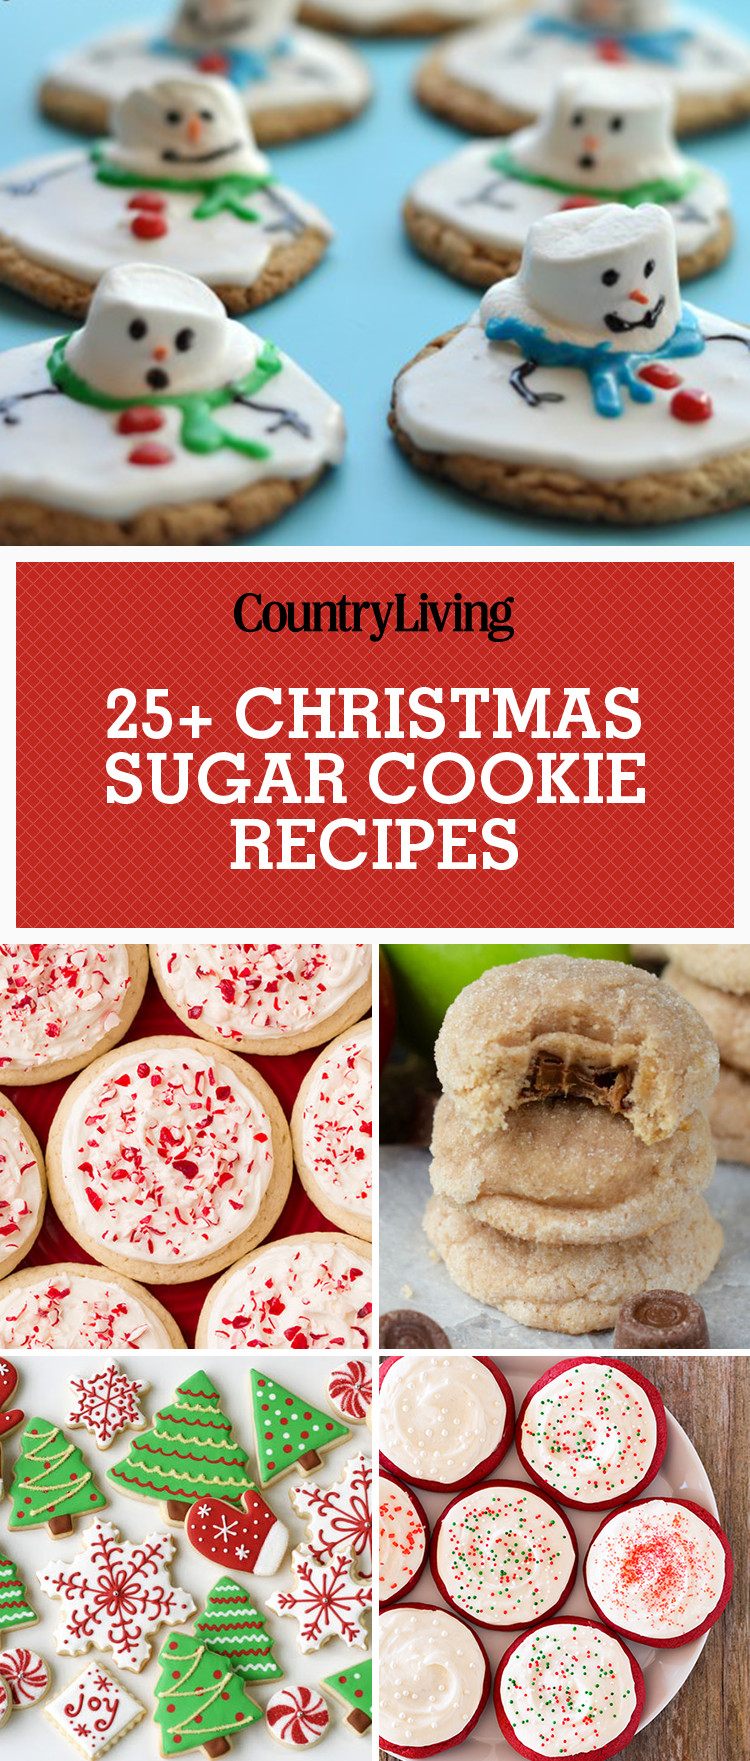 Recipe For Christmas Sugar Cookies  25 Easy Christmas Sugar Cookies Recipes & Decorating